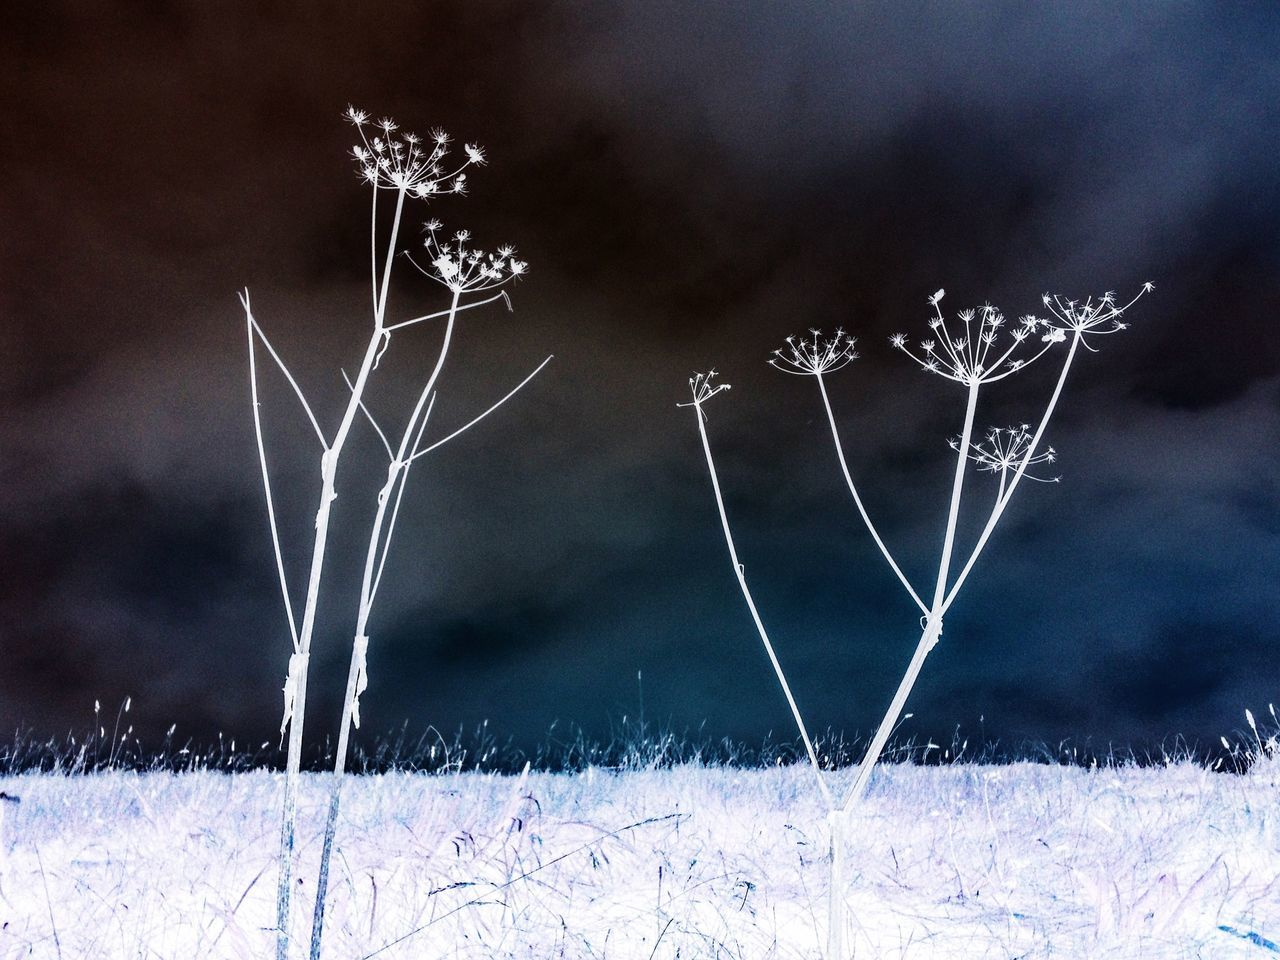 winter, snow, cold temperature, nature, focus on foreground, no people, beauty in nature, tranquility, frozen, close-up, plant, field, outdoors, scenics, fragility, night, sky